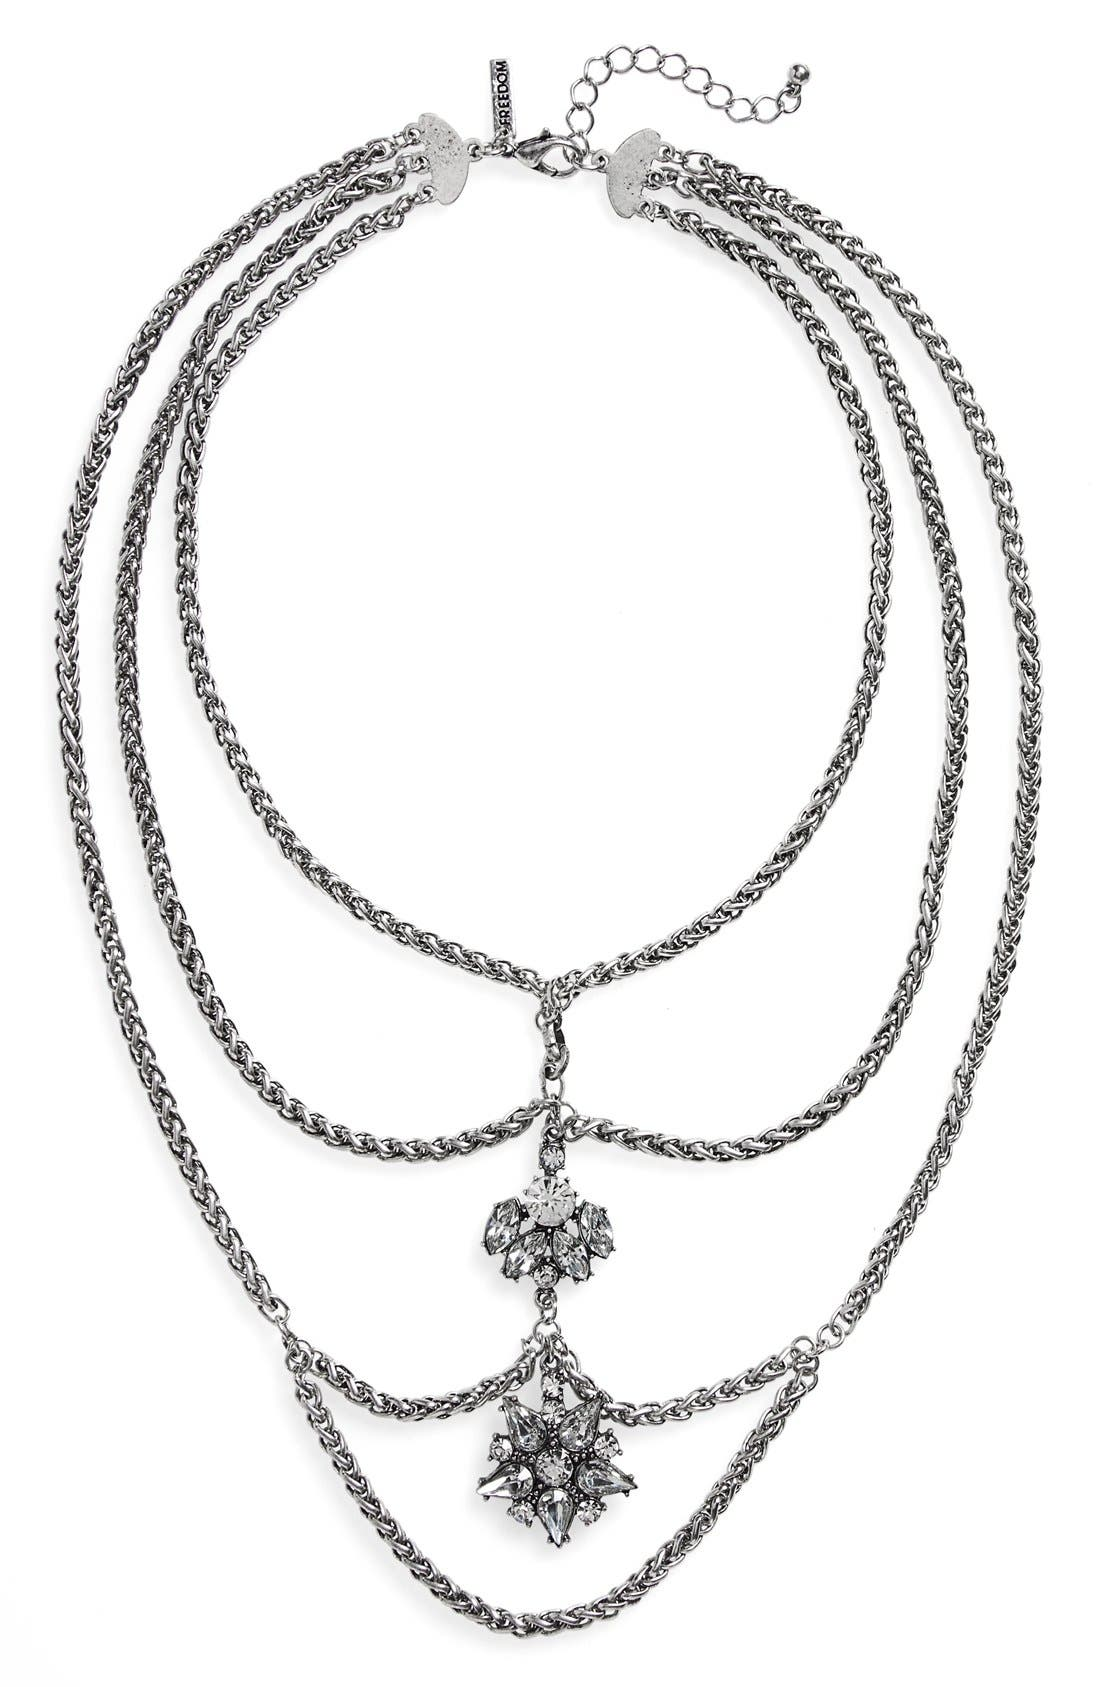 Main Image - Topshop Multi Row Chain Necklace